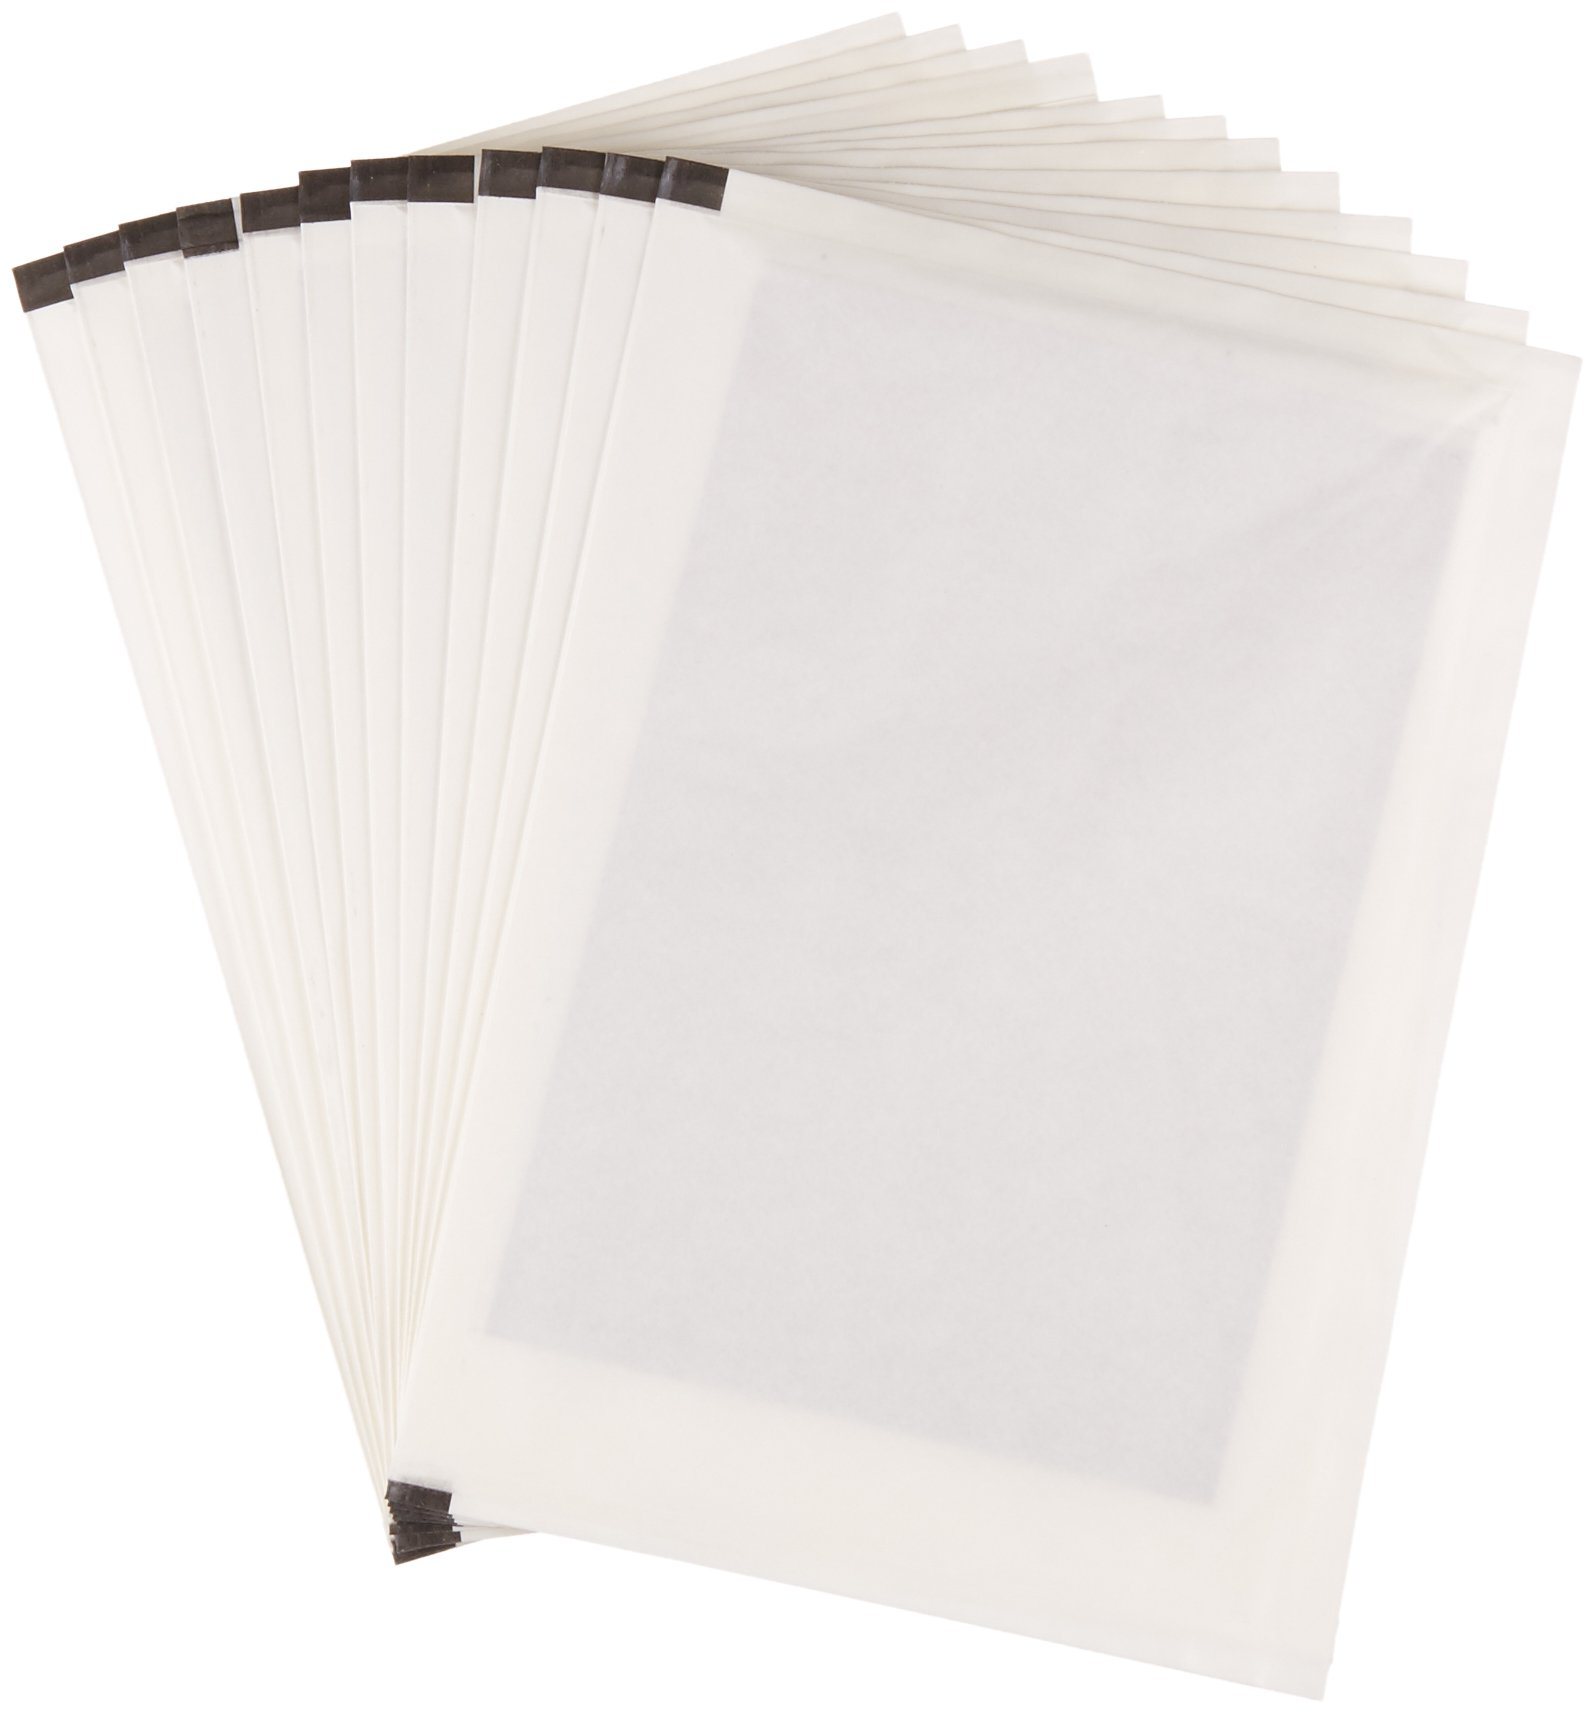 AmazonBasics SP12A Shredder Sharpening & Lubricant Sheets - Pack of 12